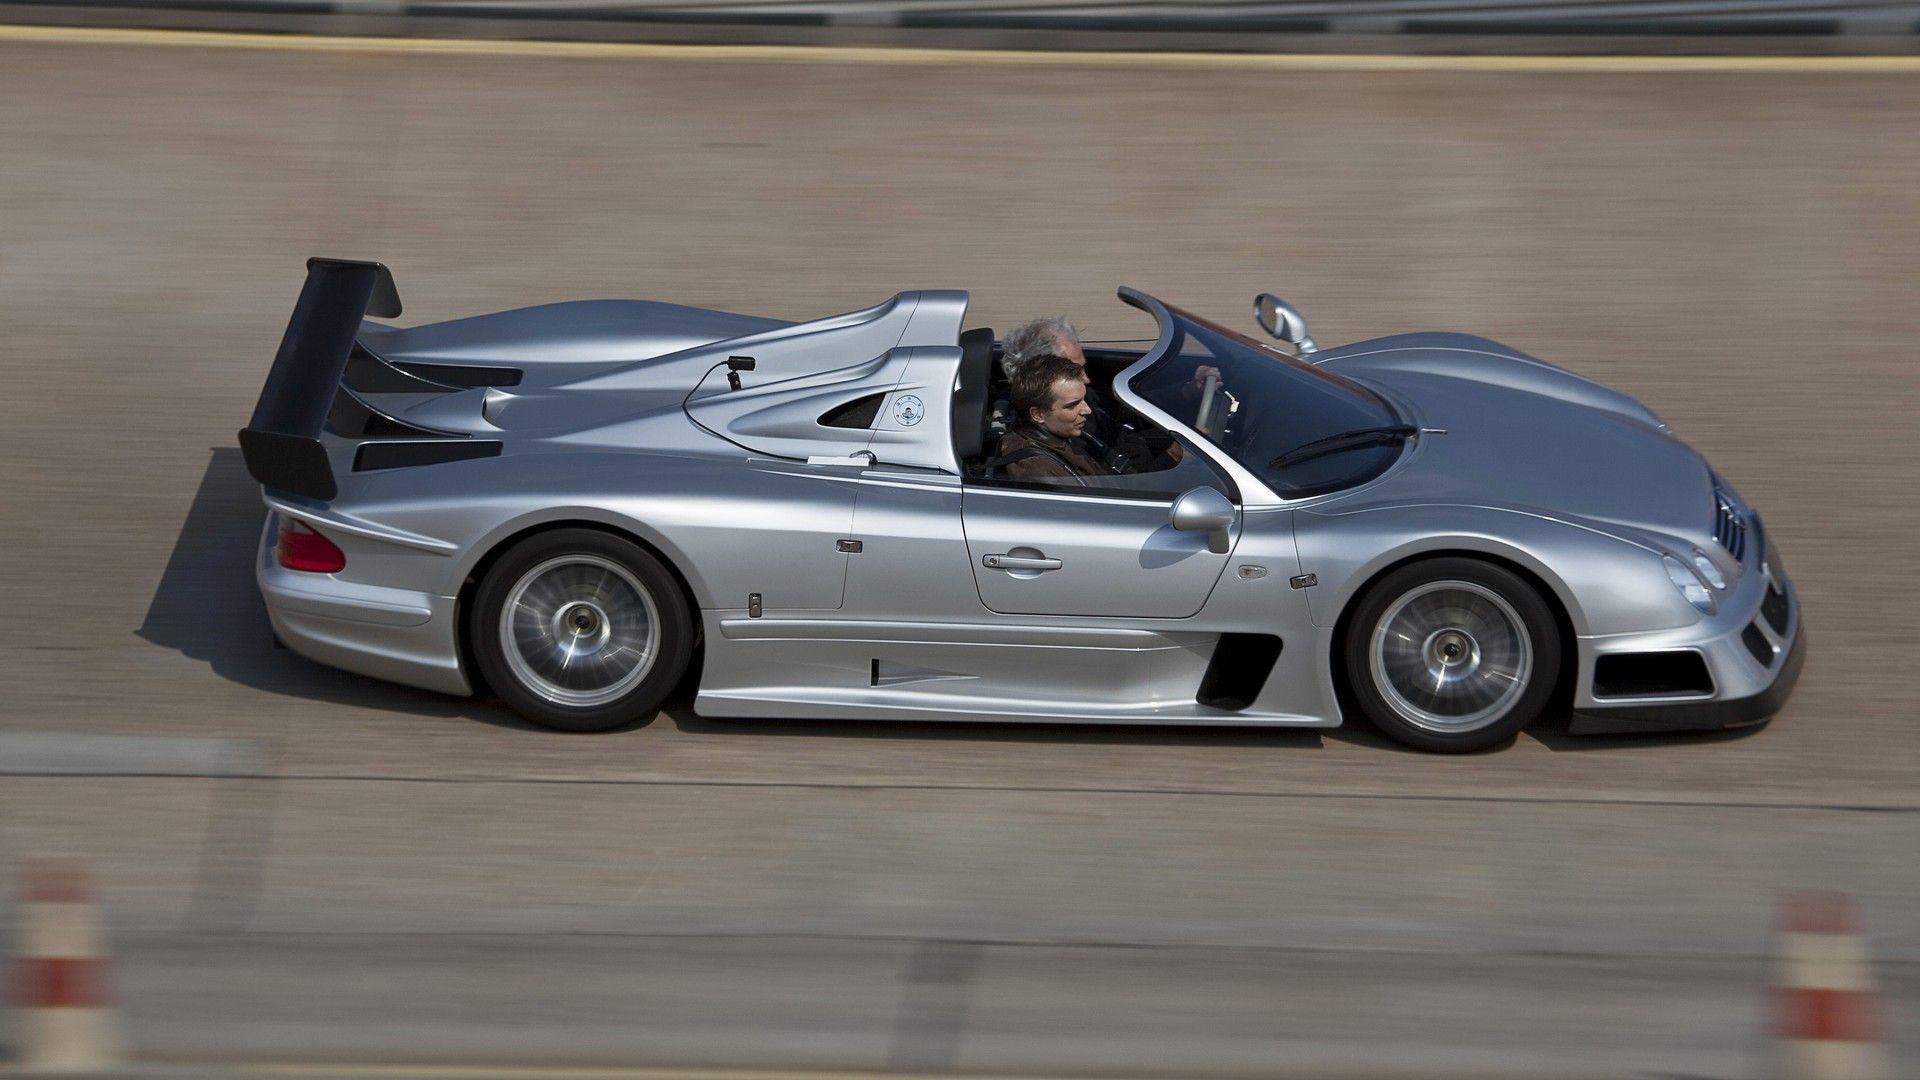 Revisit The Mercedes-AMG CLK GTR In This Short-But-Sweet Video